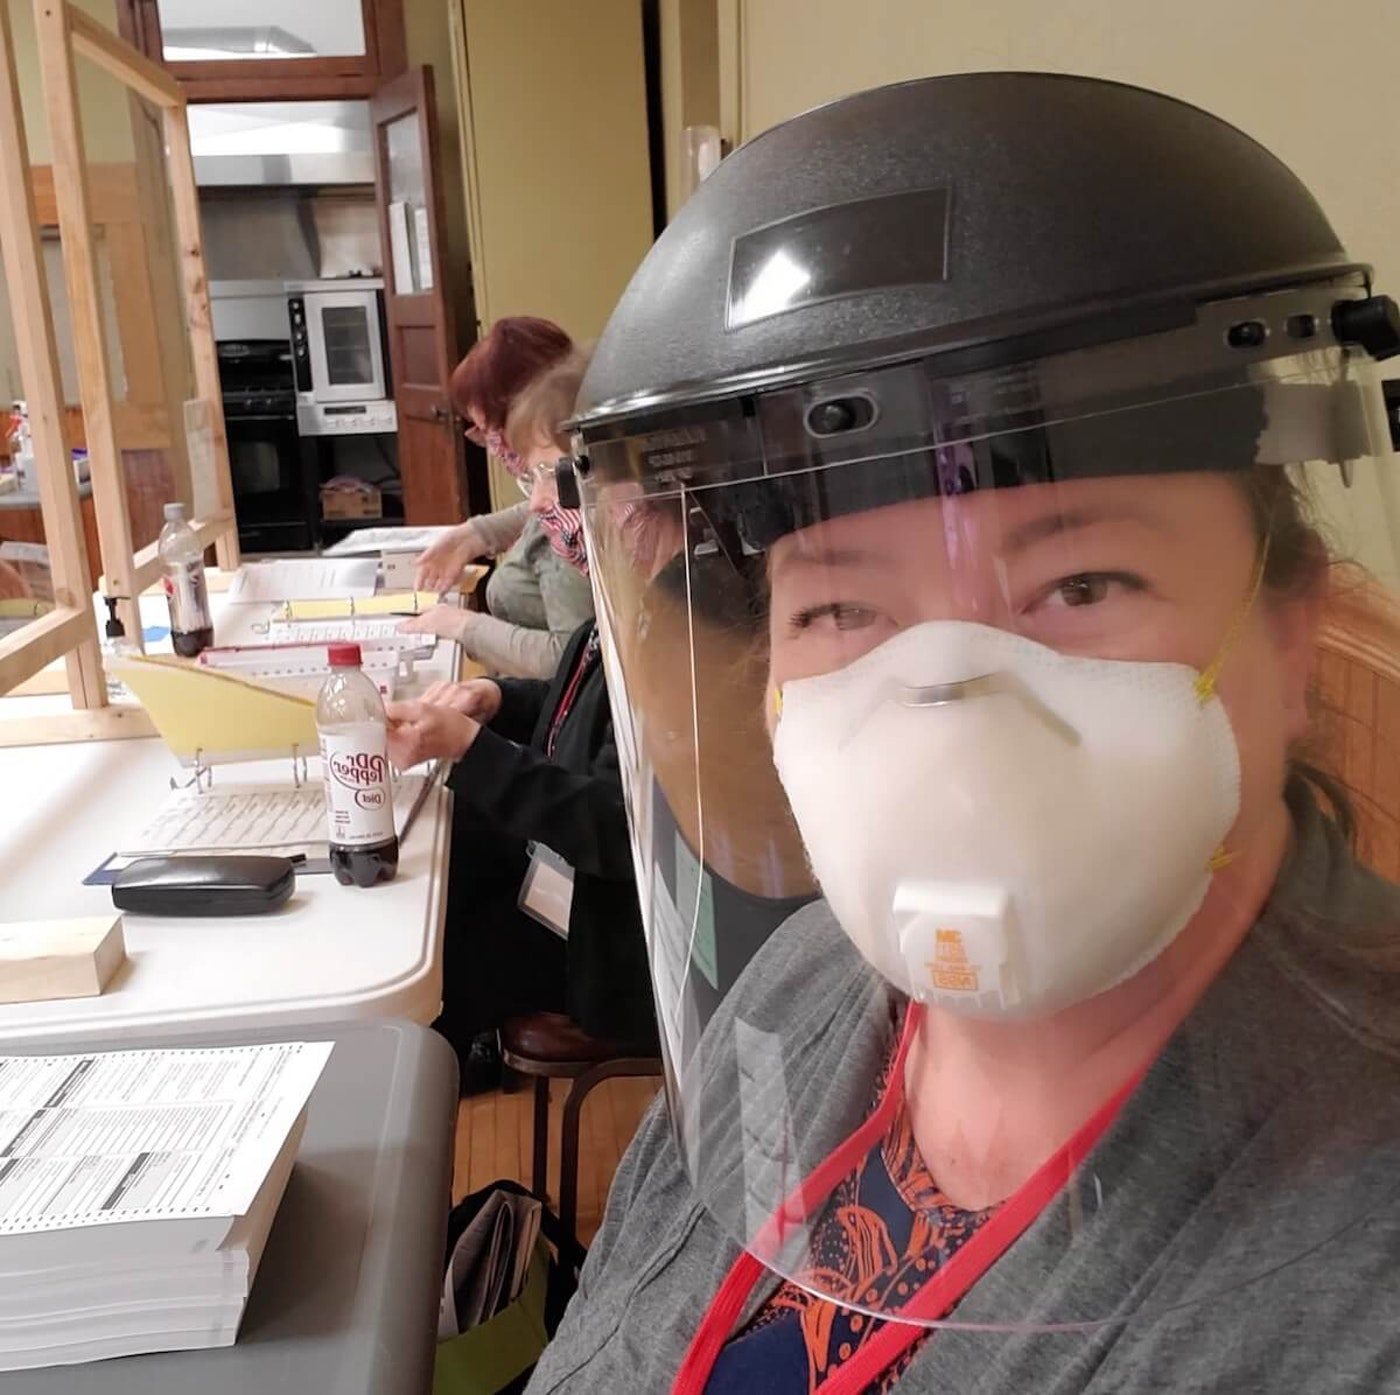 Alyssa Van Duyse donned protective gear, including an N95 mask, to be a polling place worker in Chippewa Falls during the spring election. She is working Election Day, too. Many cities were short election poll workers in April, including Green Bay. (Contributed photo )